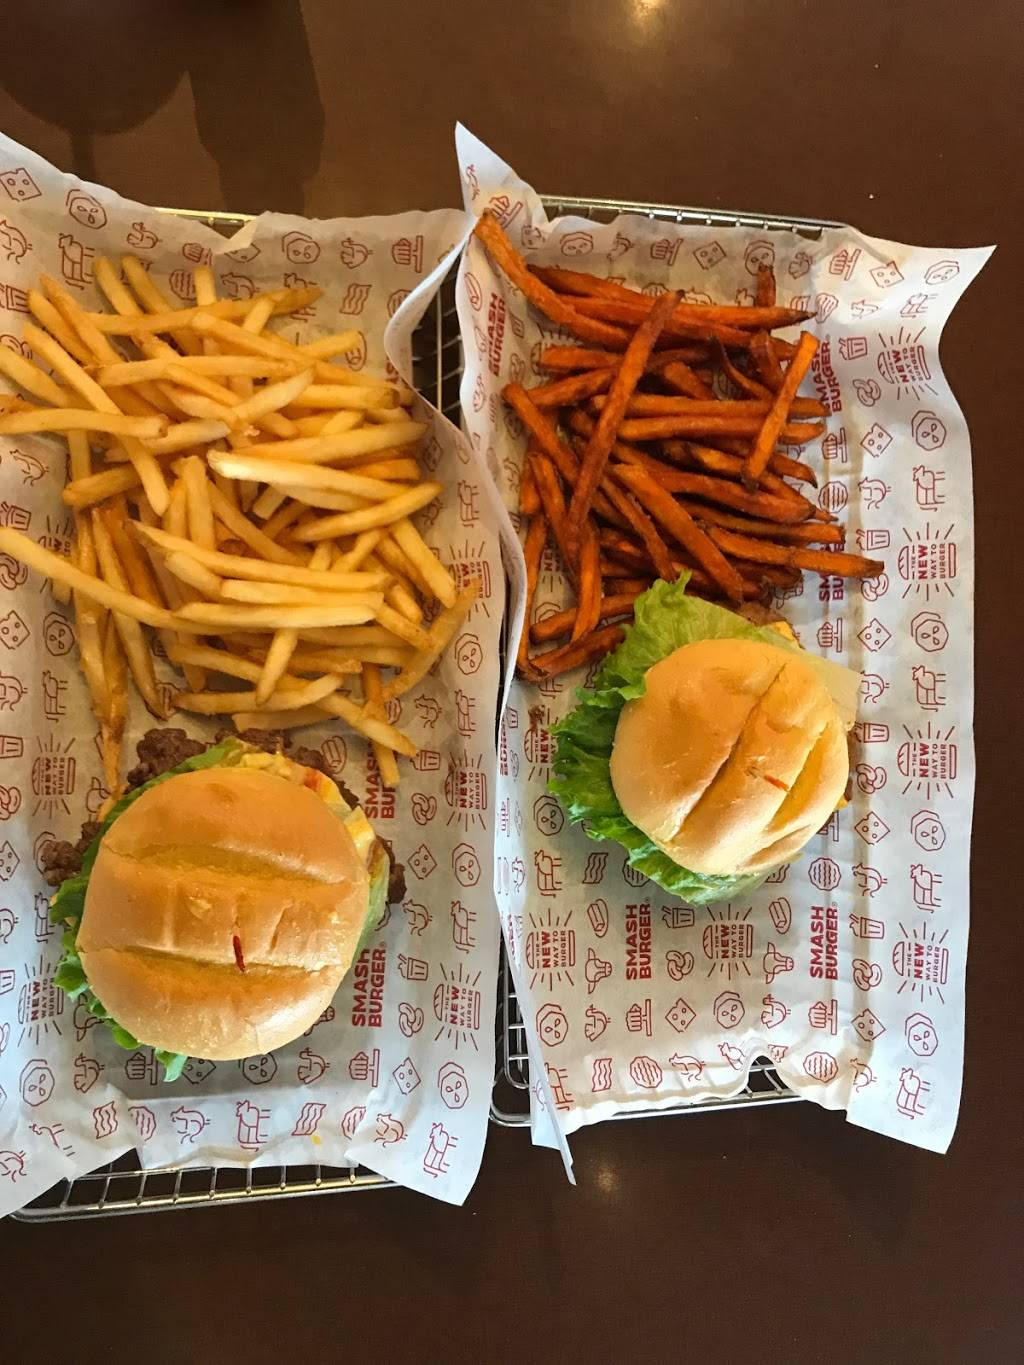 Smashburger | restaurant | 9775 Medlock Bridge Rd Suite A, Johns Creek, GA 30097, USA | 7704976274 OR +1 770-497-6274